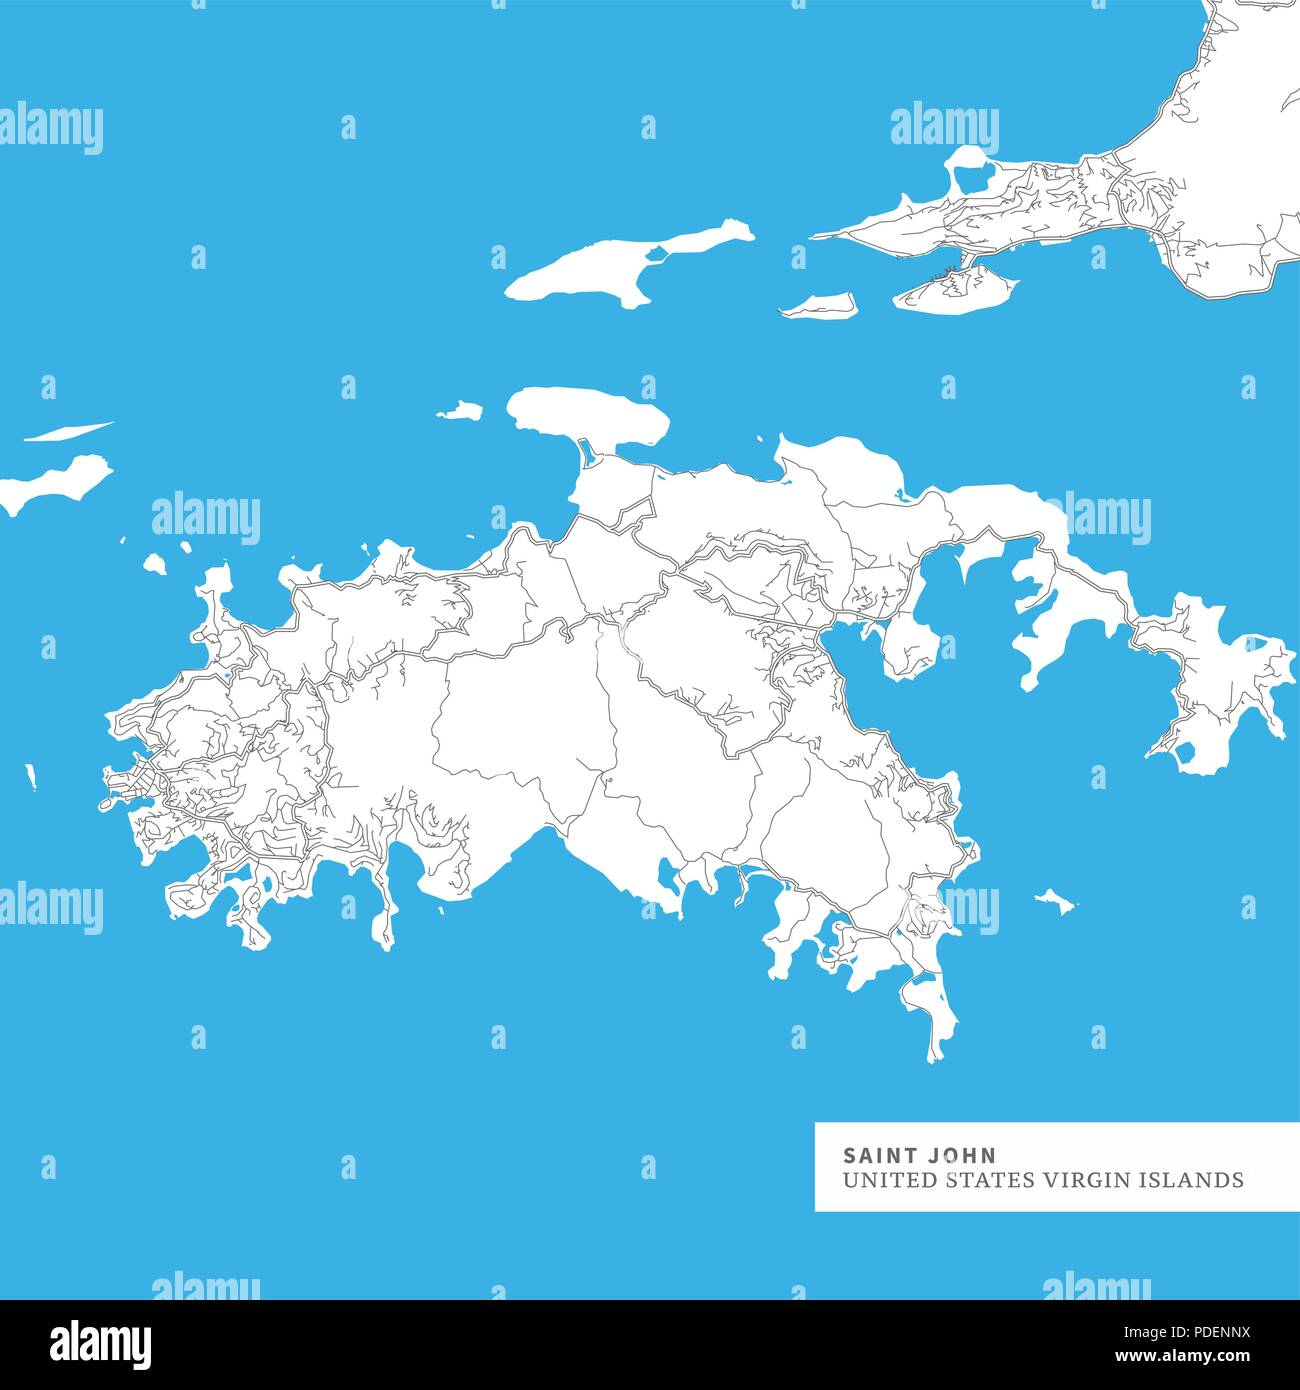 Map of Saint John Island, United States Virgin Islands, contains ...